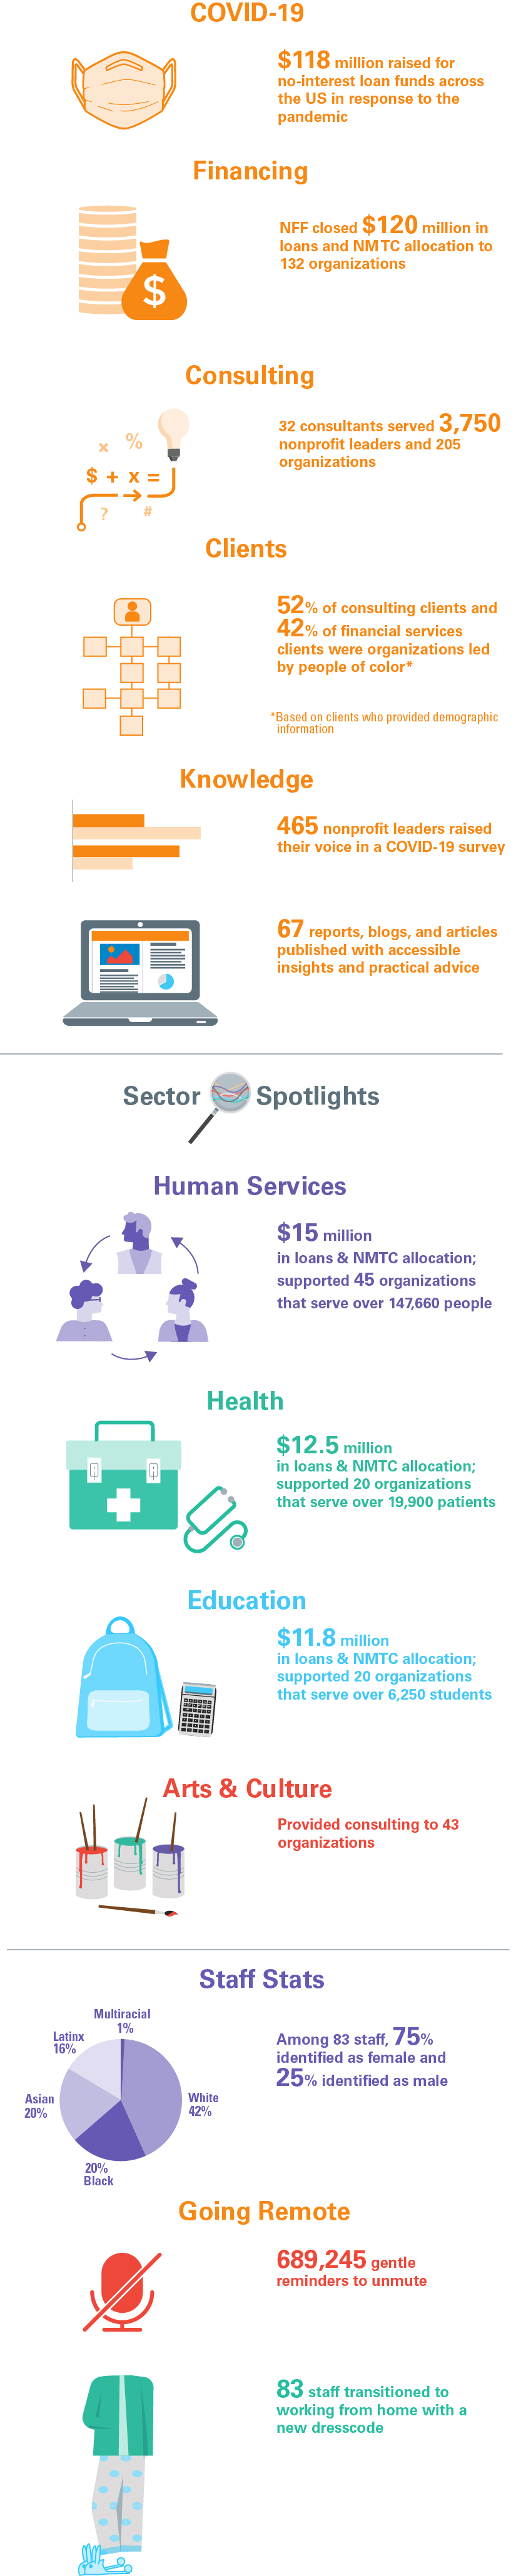 Infographic featuring NFF's work in 2020 related to COVID-19, finance, consulting, sectors, and knowledge.